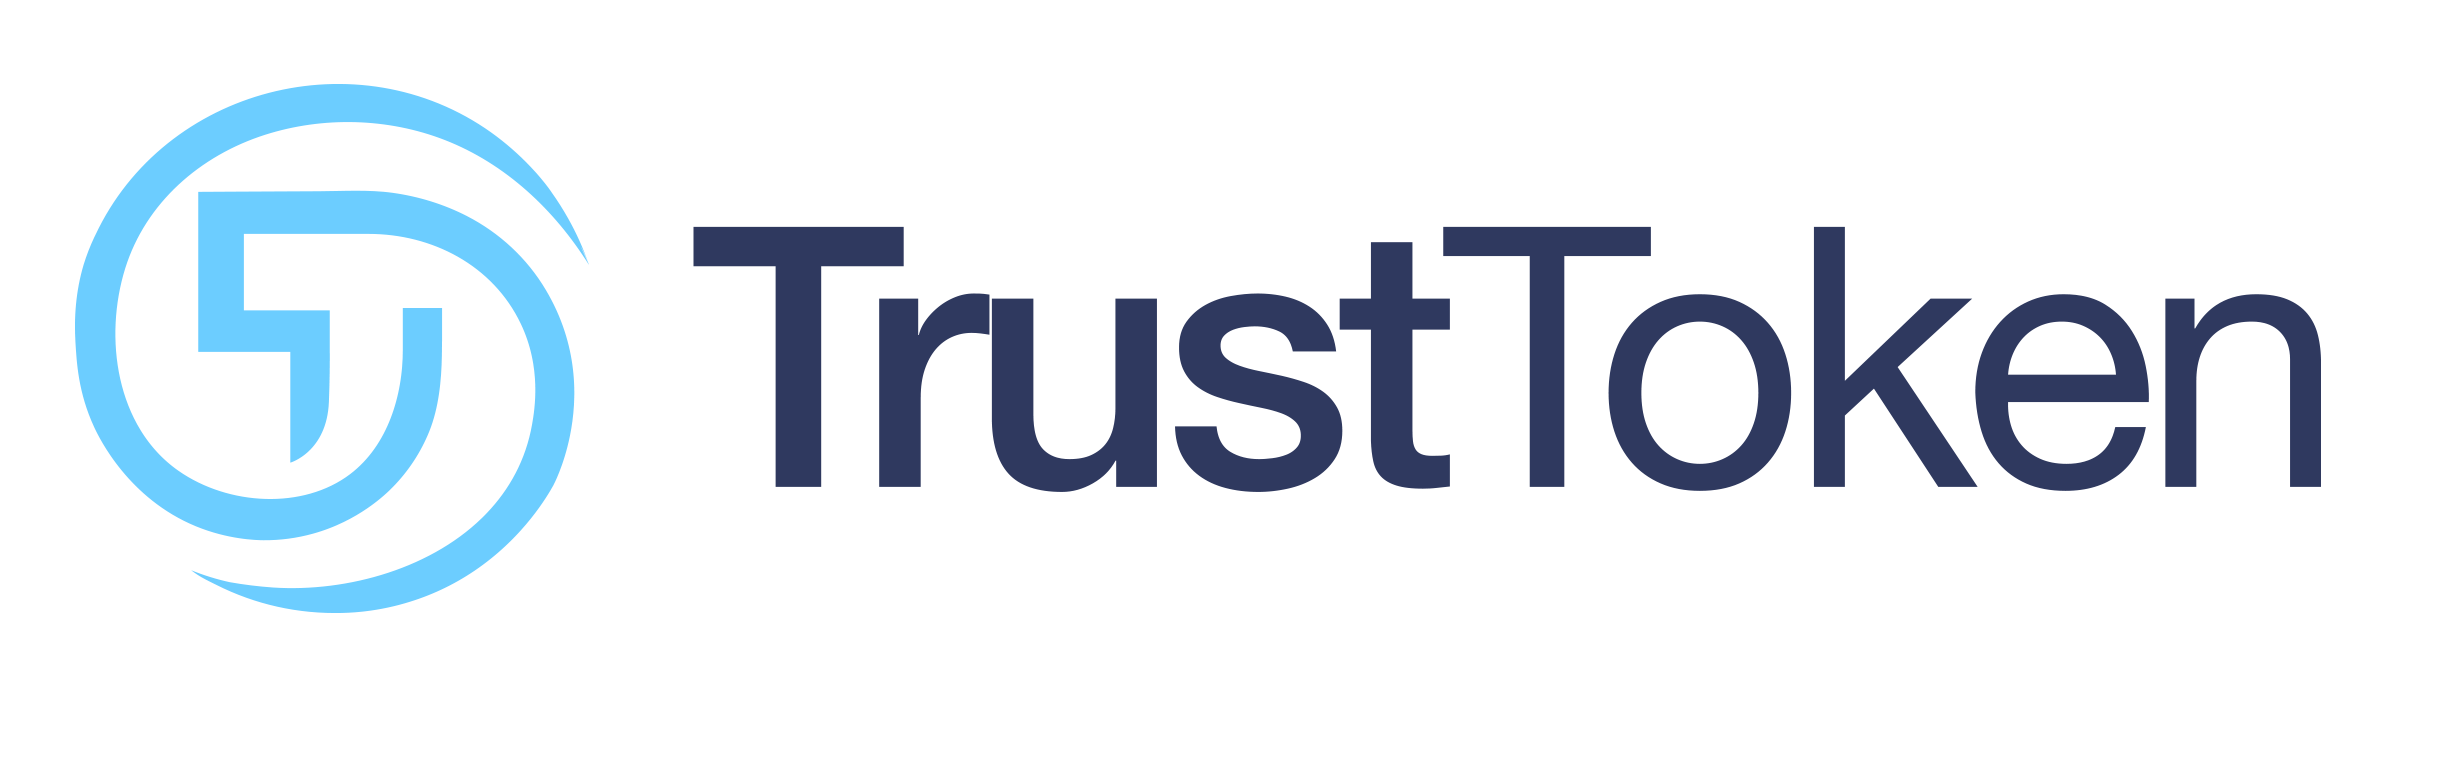 TrustToken Help Center Help Center home page